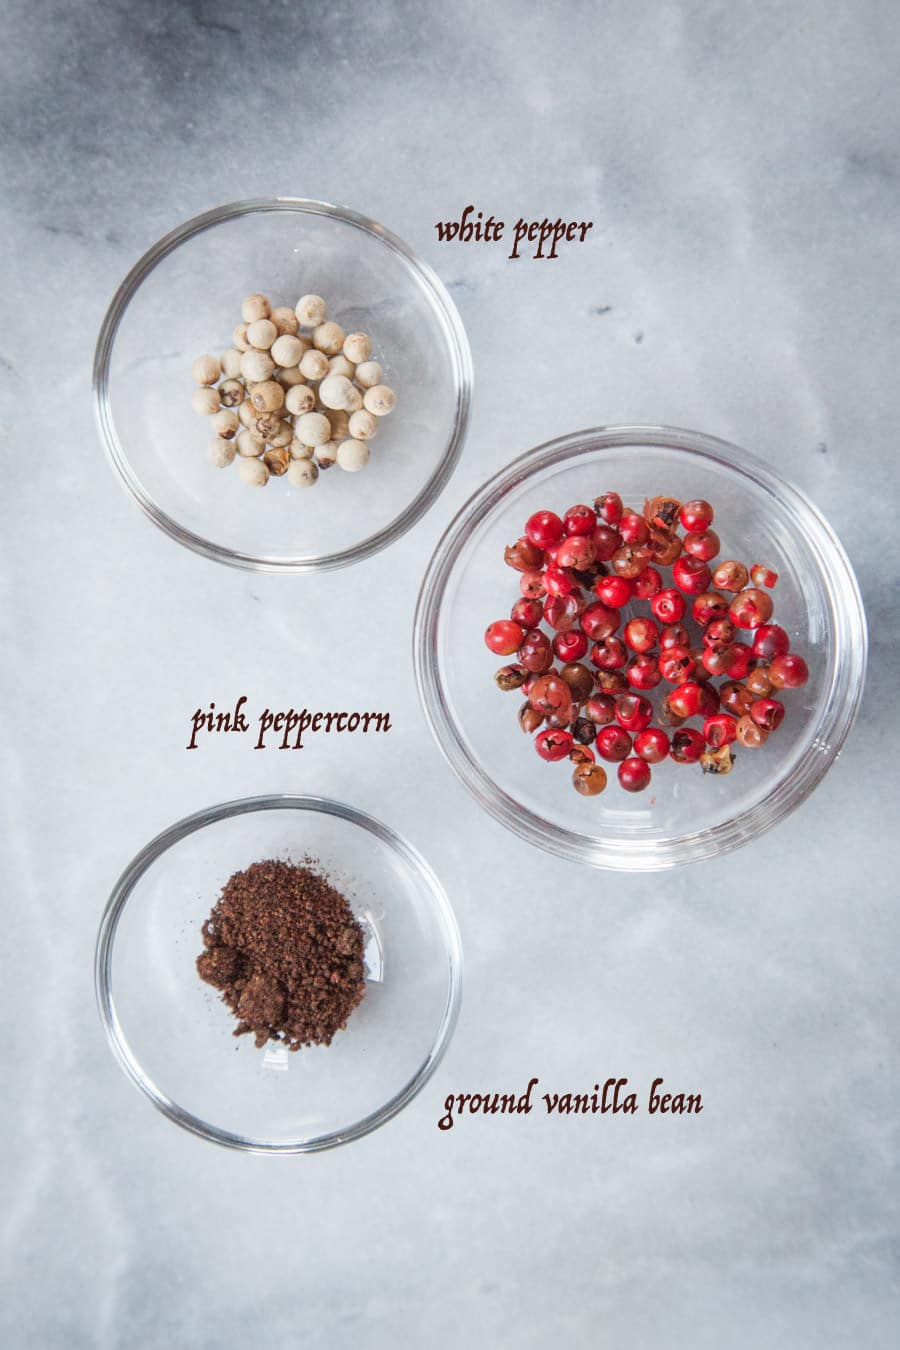 white pepper, pink peppercorn and ground vanilla bean